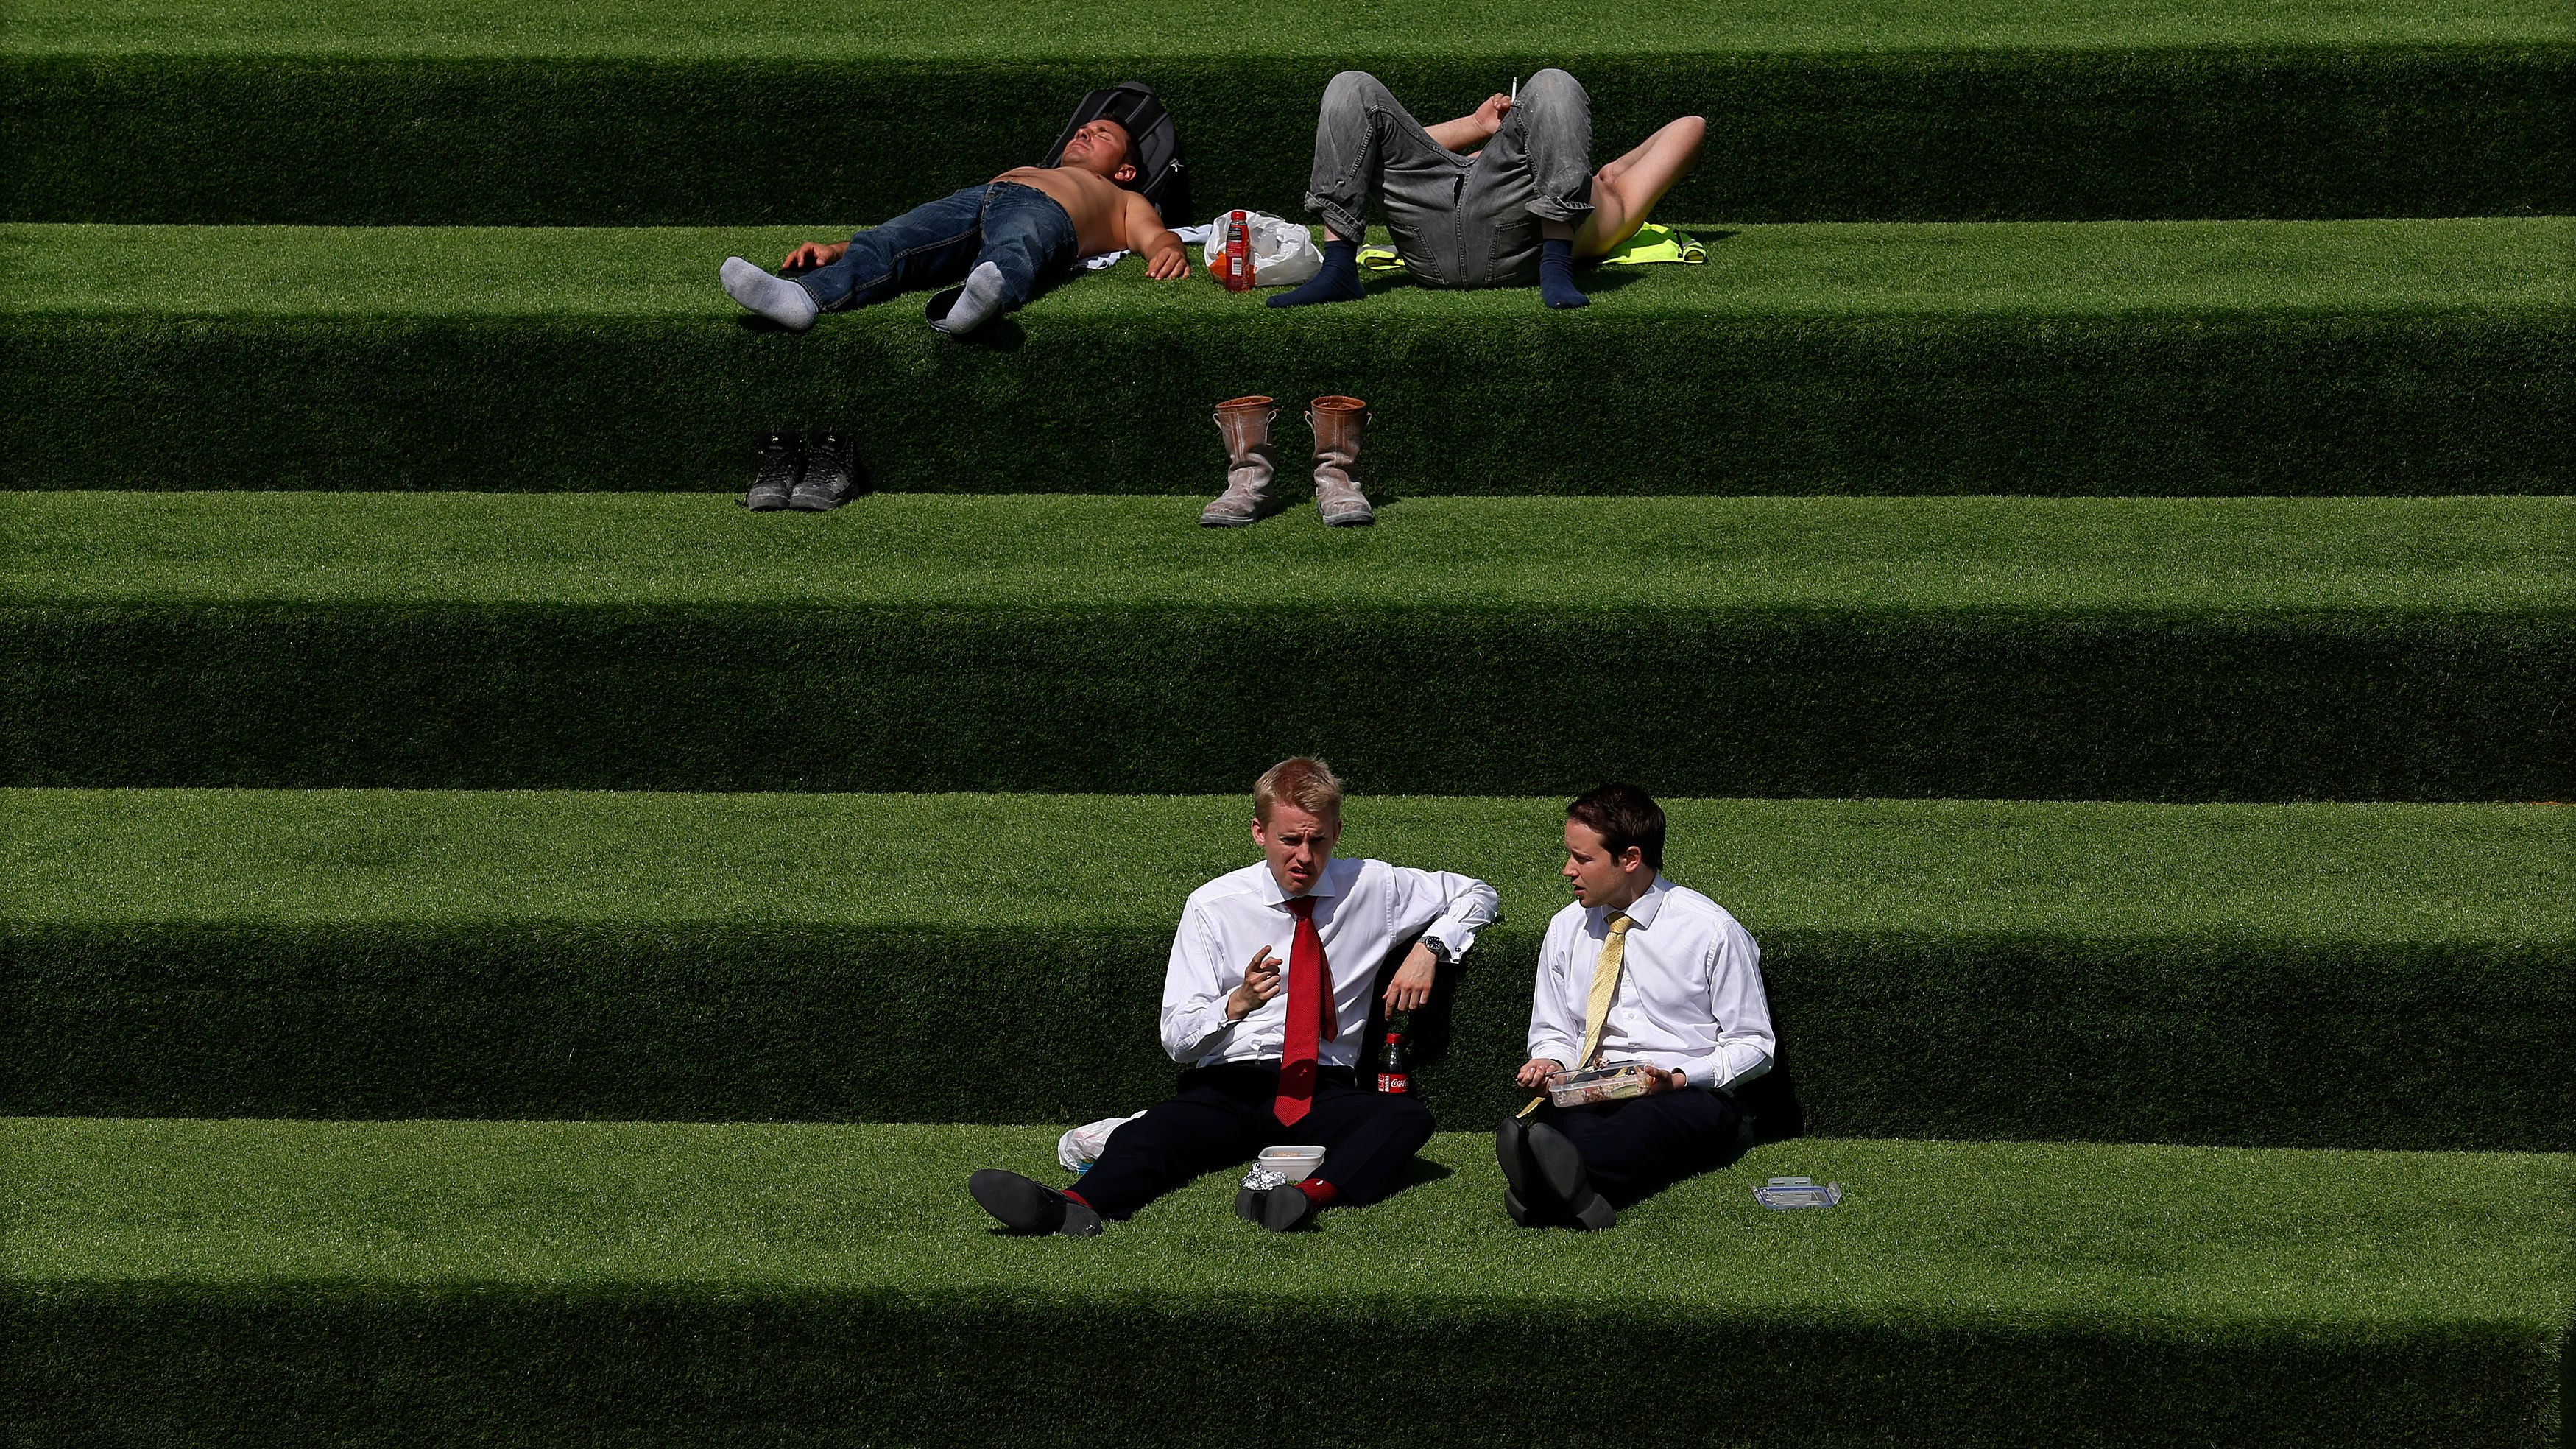 Men eat lunch and relax on a stairway covered in artificial grass near St. Pancras Station in London